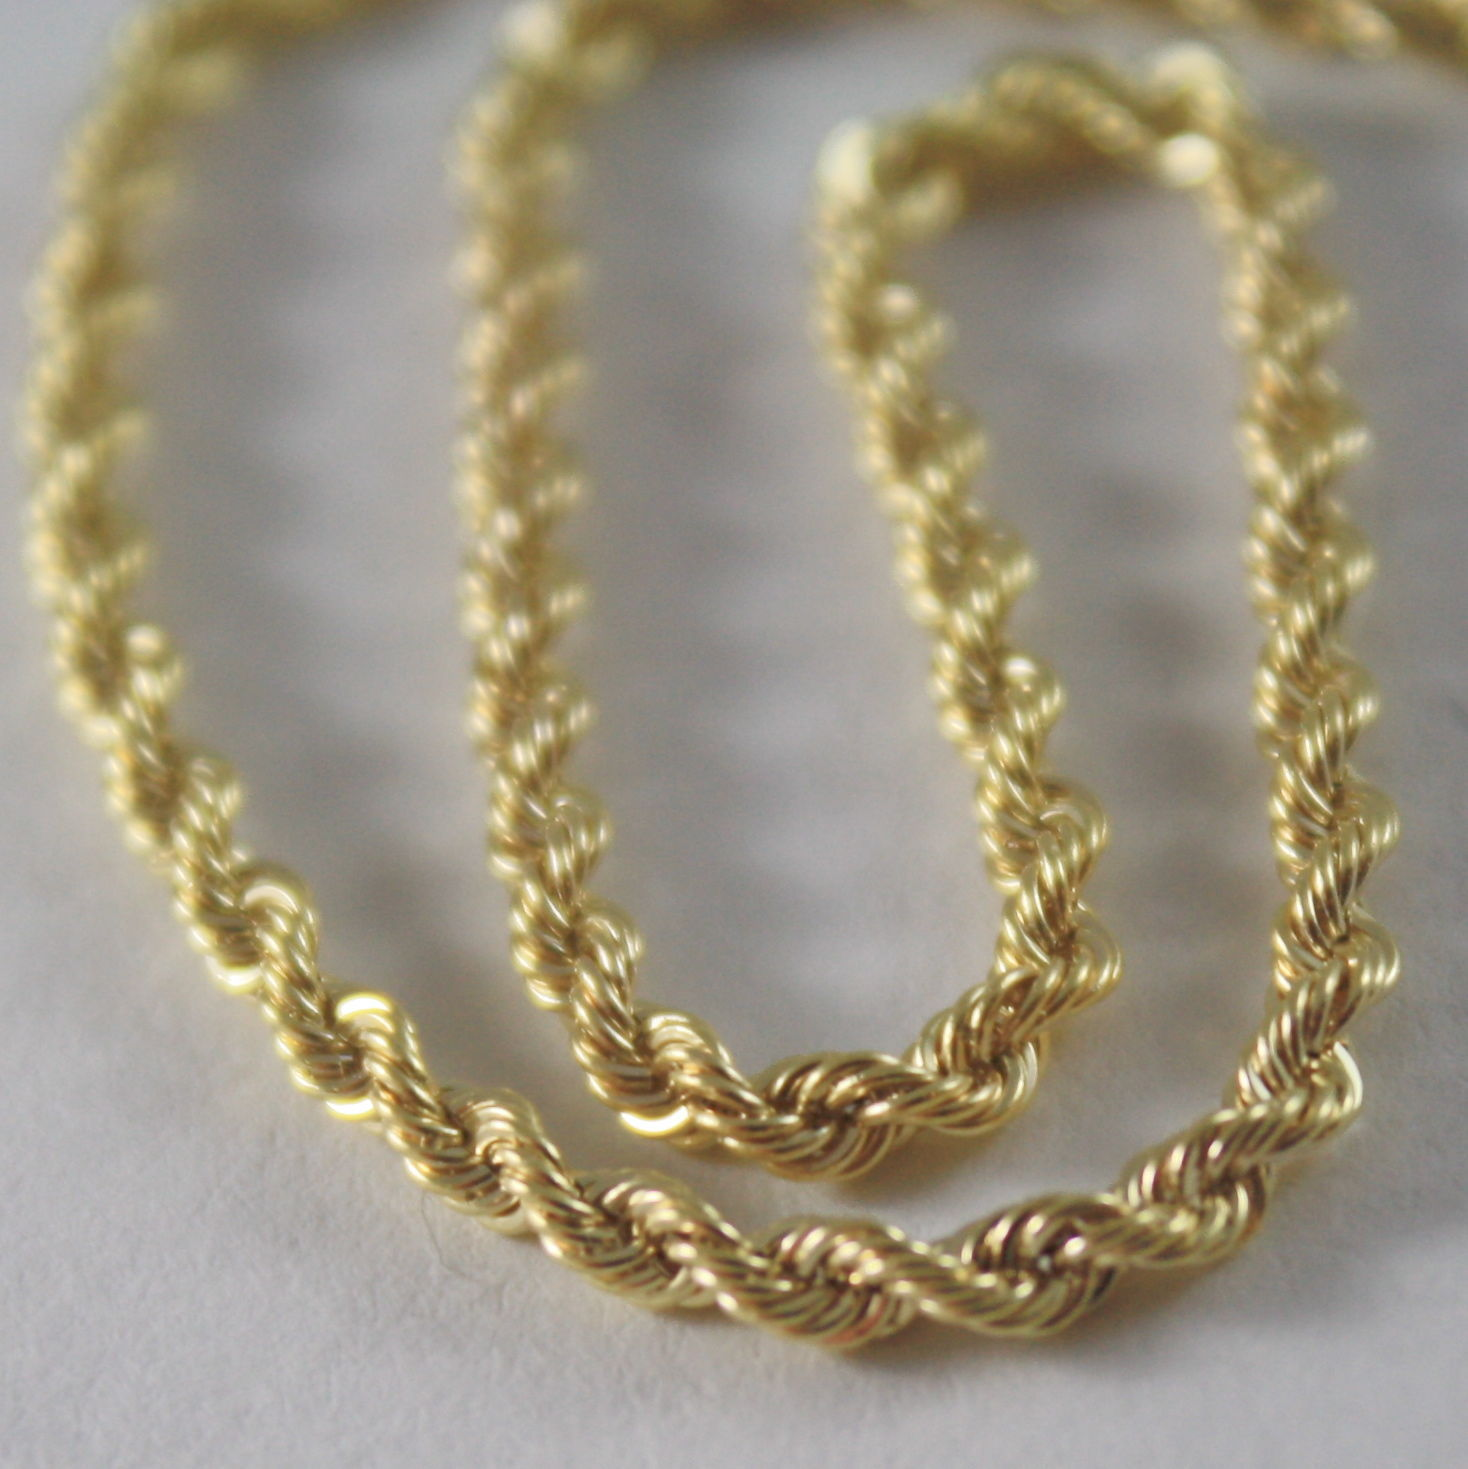 14K YELLOW GOLD ROPE CHAIN, 17.71 IN. BRAID ROPE CORD, NECKLACE, MADE IN ITALY